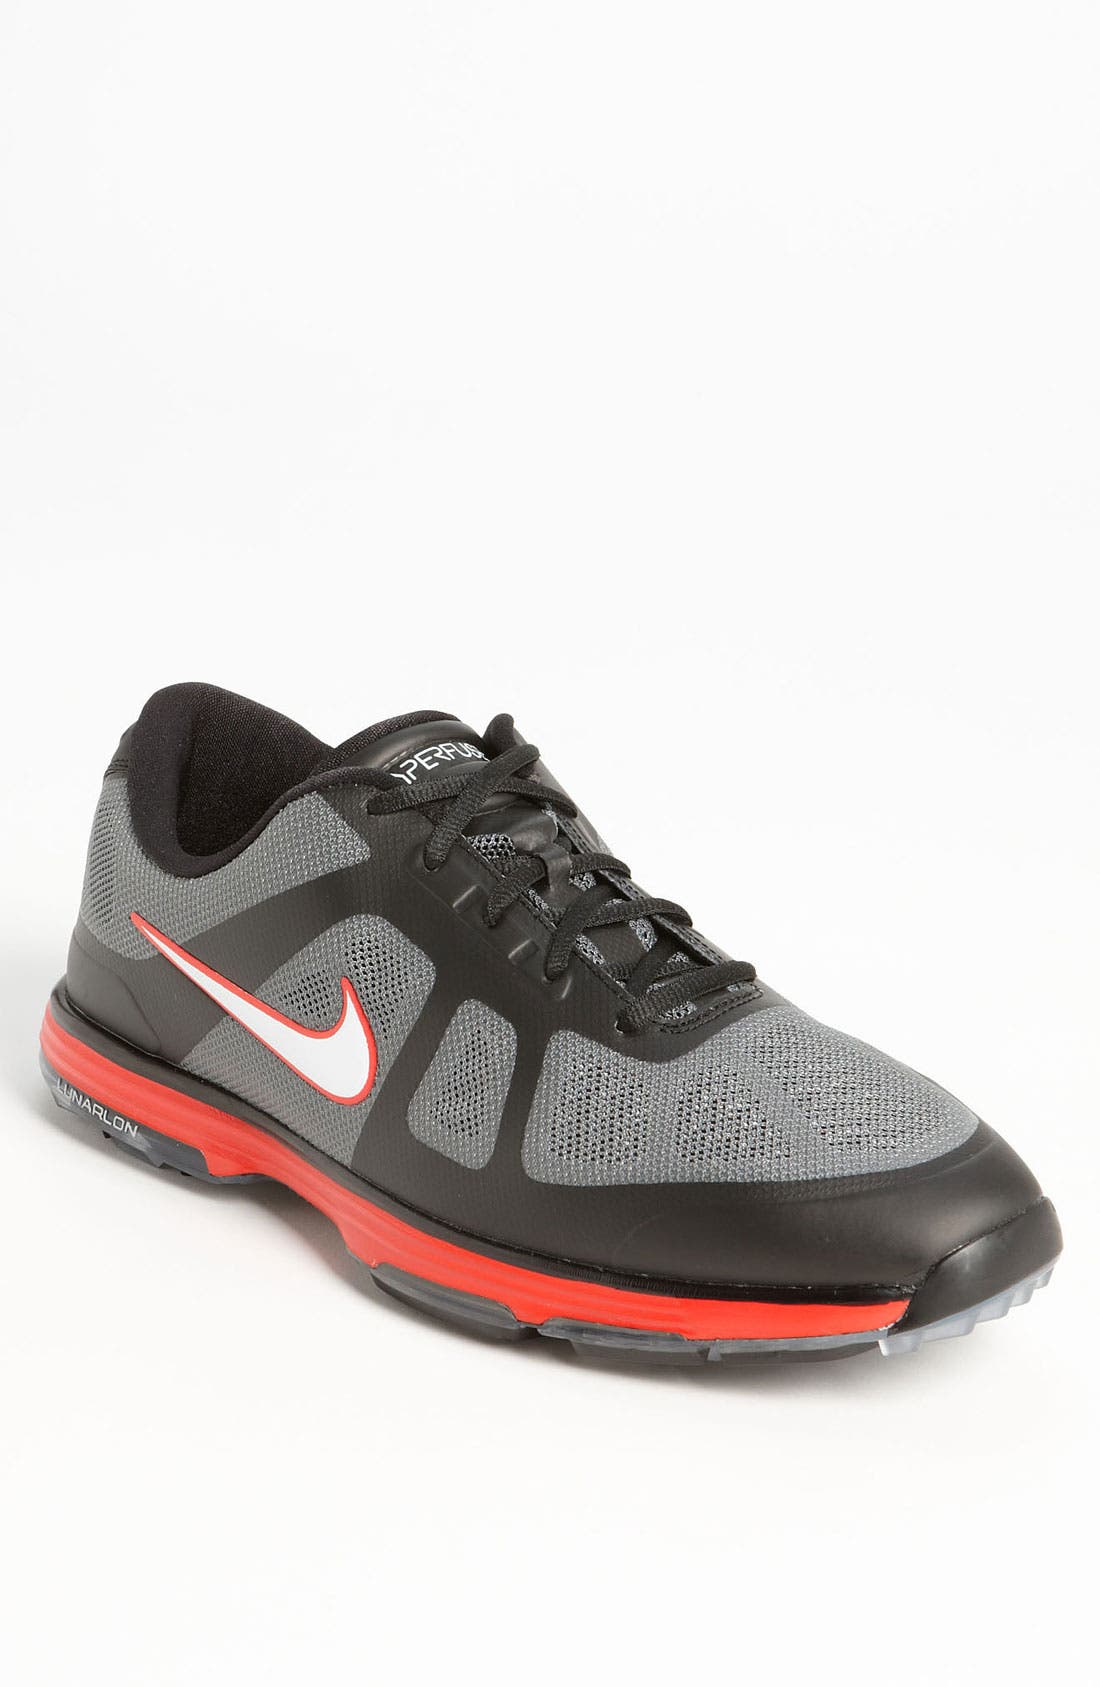 Alternate Image 1 Selected - Nike 'Lunar Ascend' Golf Shoe (Men)